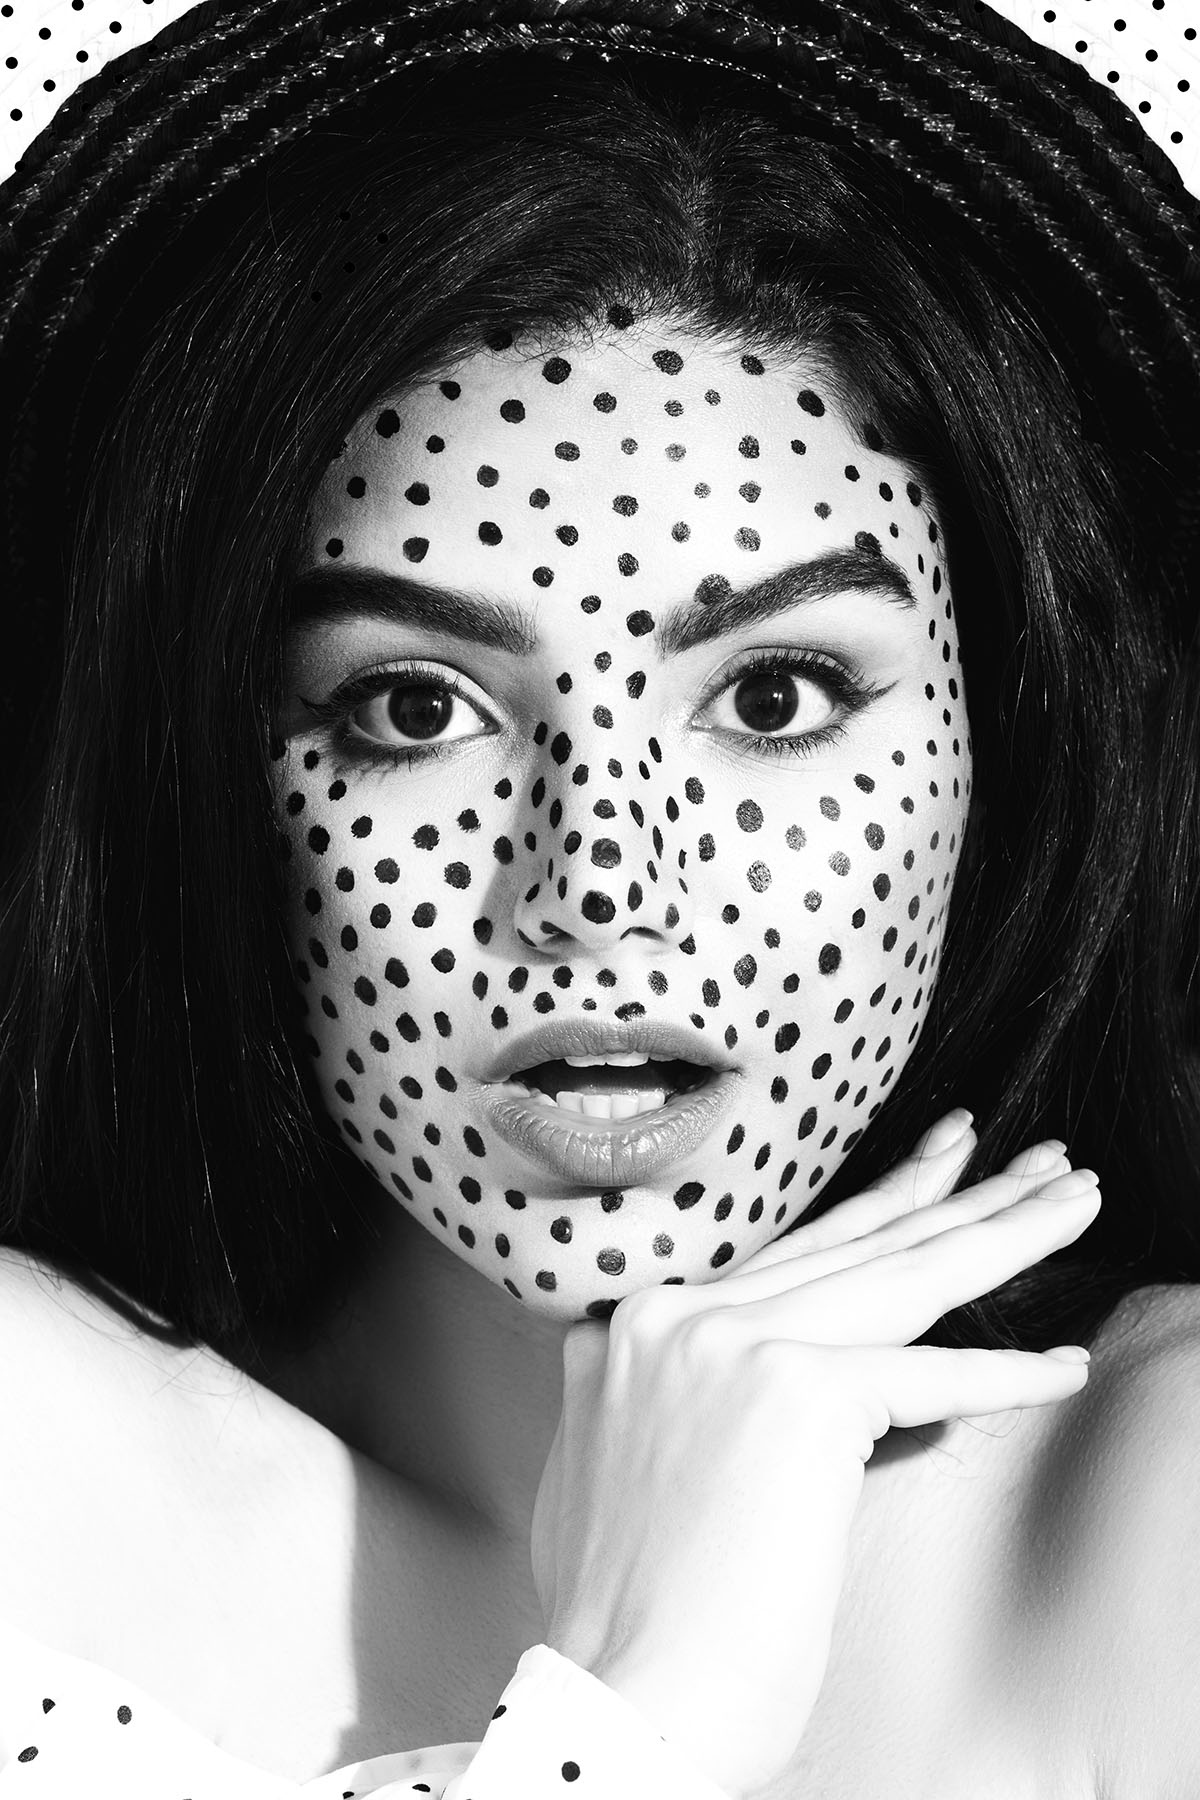 Polkadot beauty editorial 'Polly Polka' by Loesje Kessels Fashion Photographer Dubai